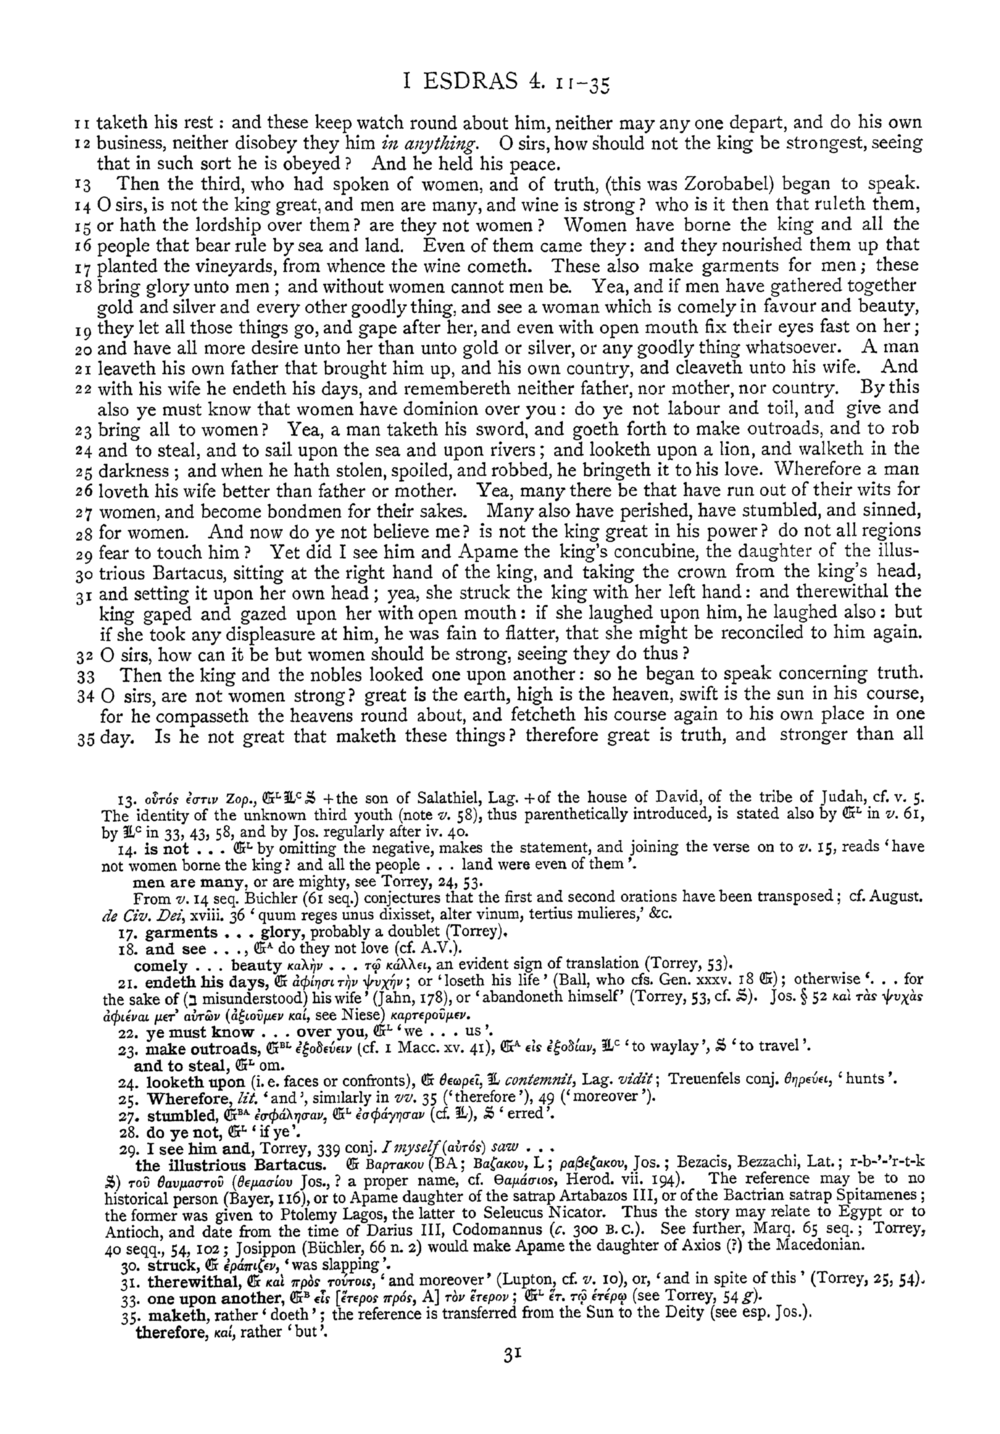 Image of page 31